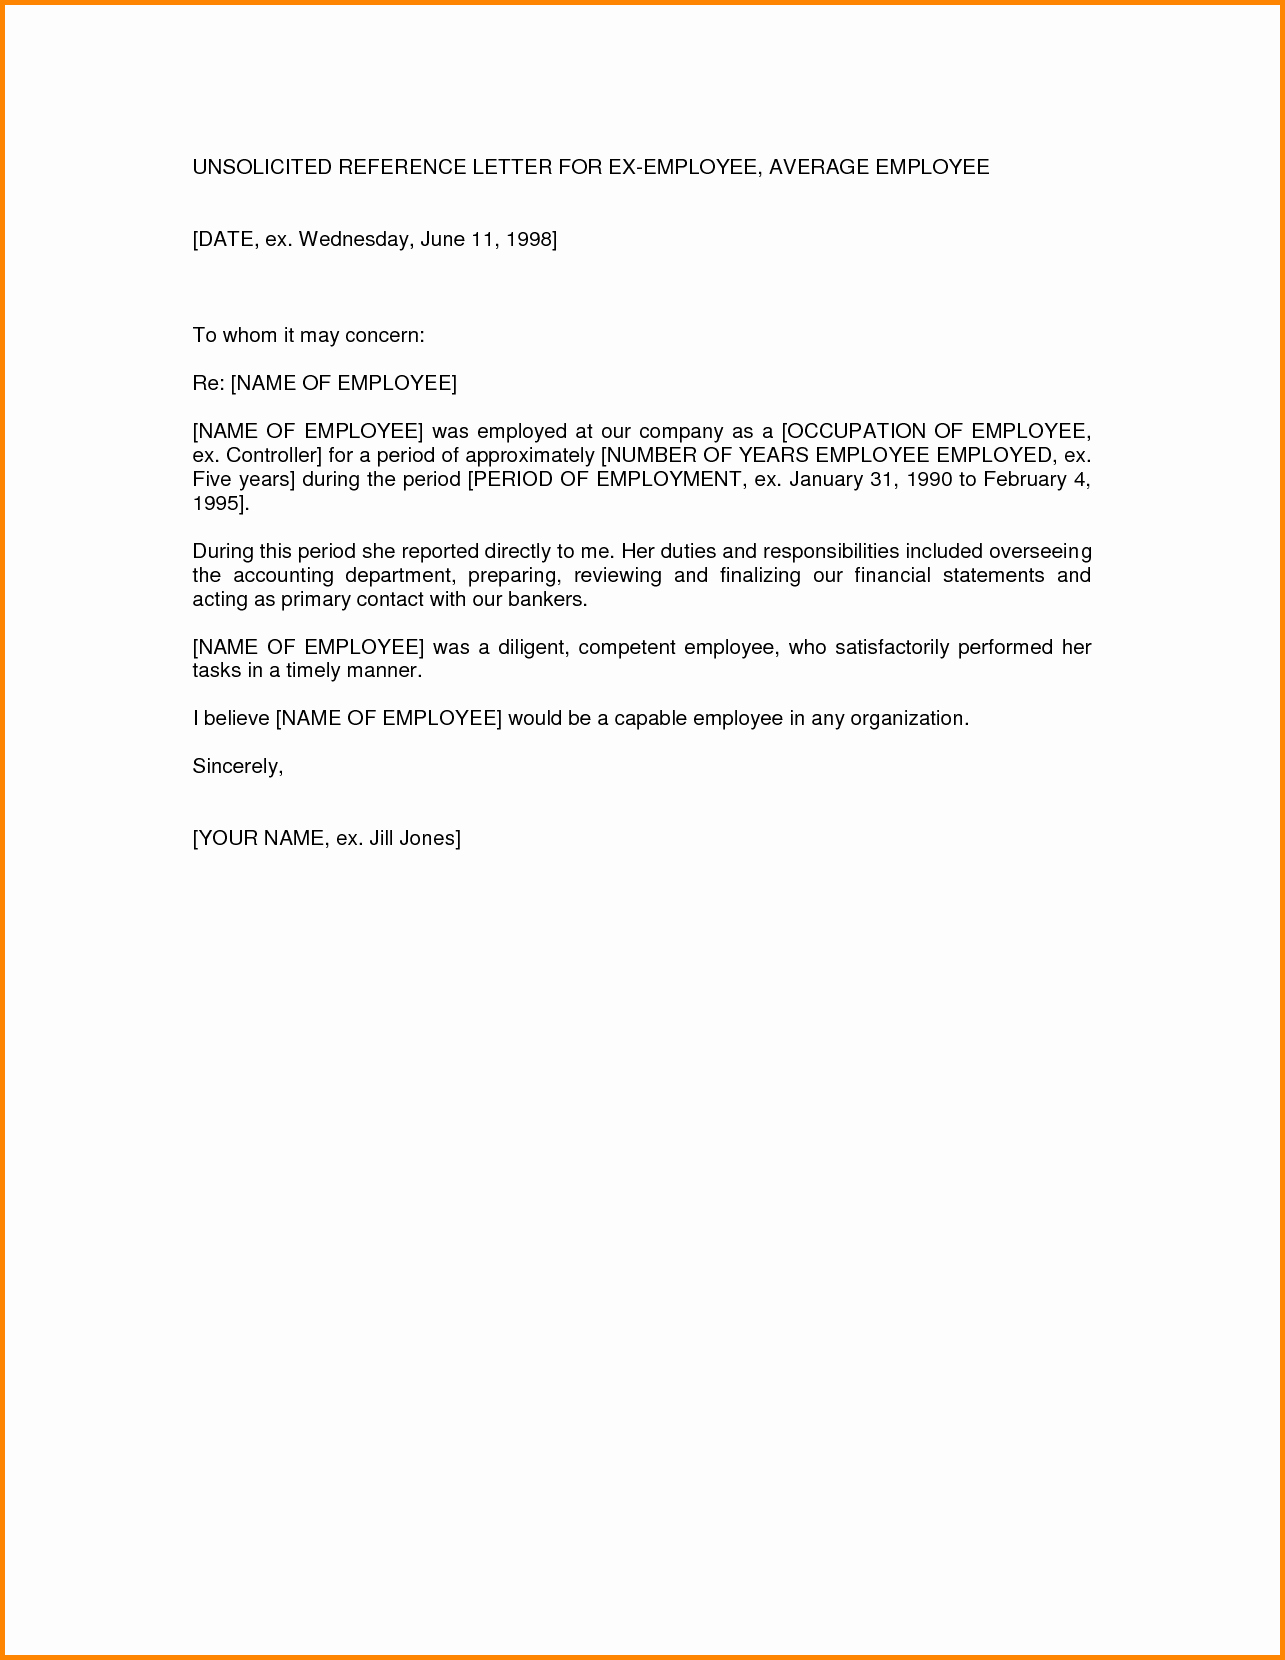 Reference Letter for Employee Template New Reference Letter Template for Employee Bamboodownunder